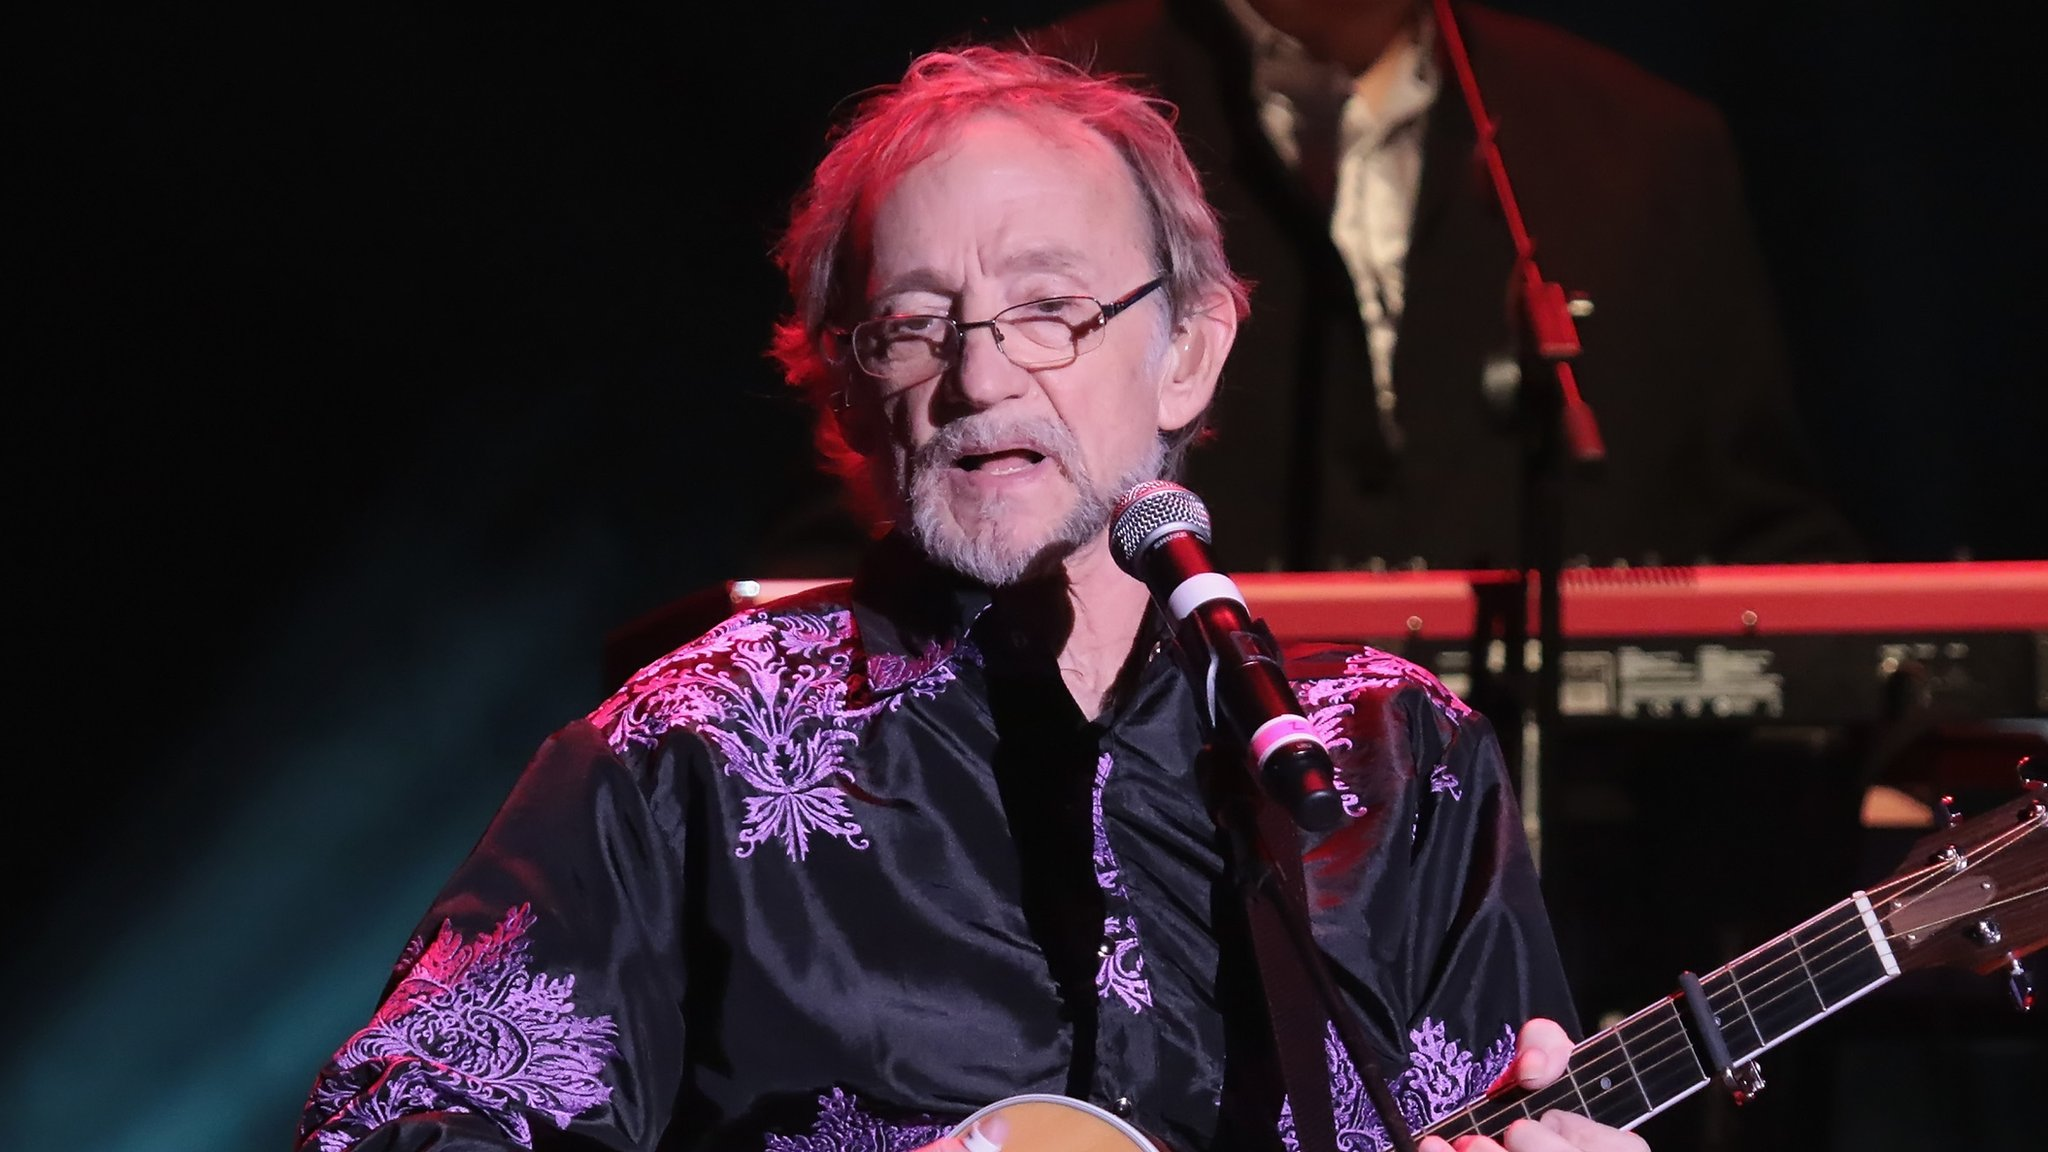 Monkees musician Peter Tork dies at 77